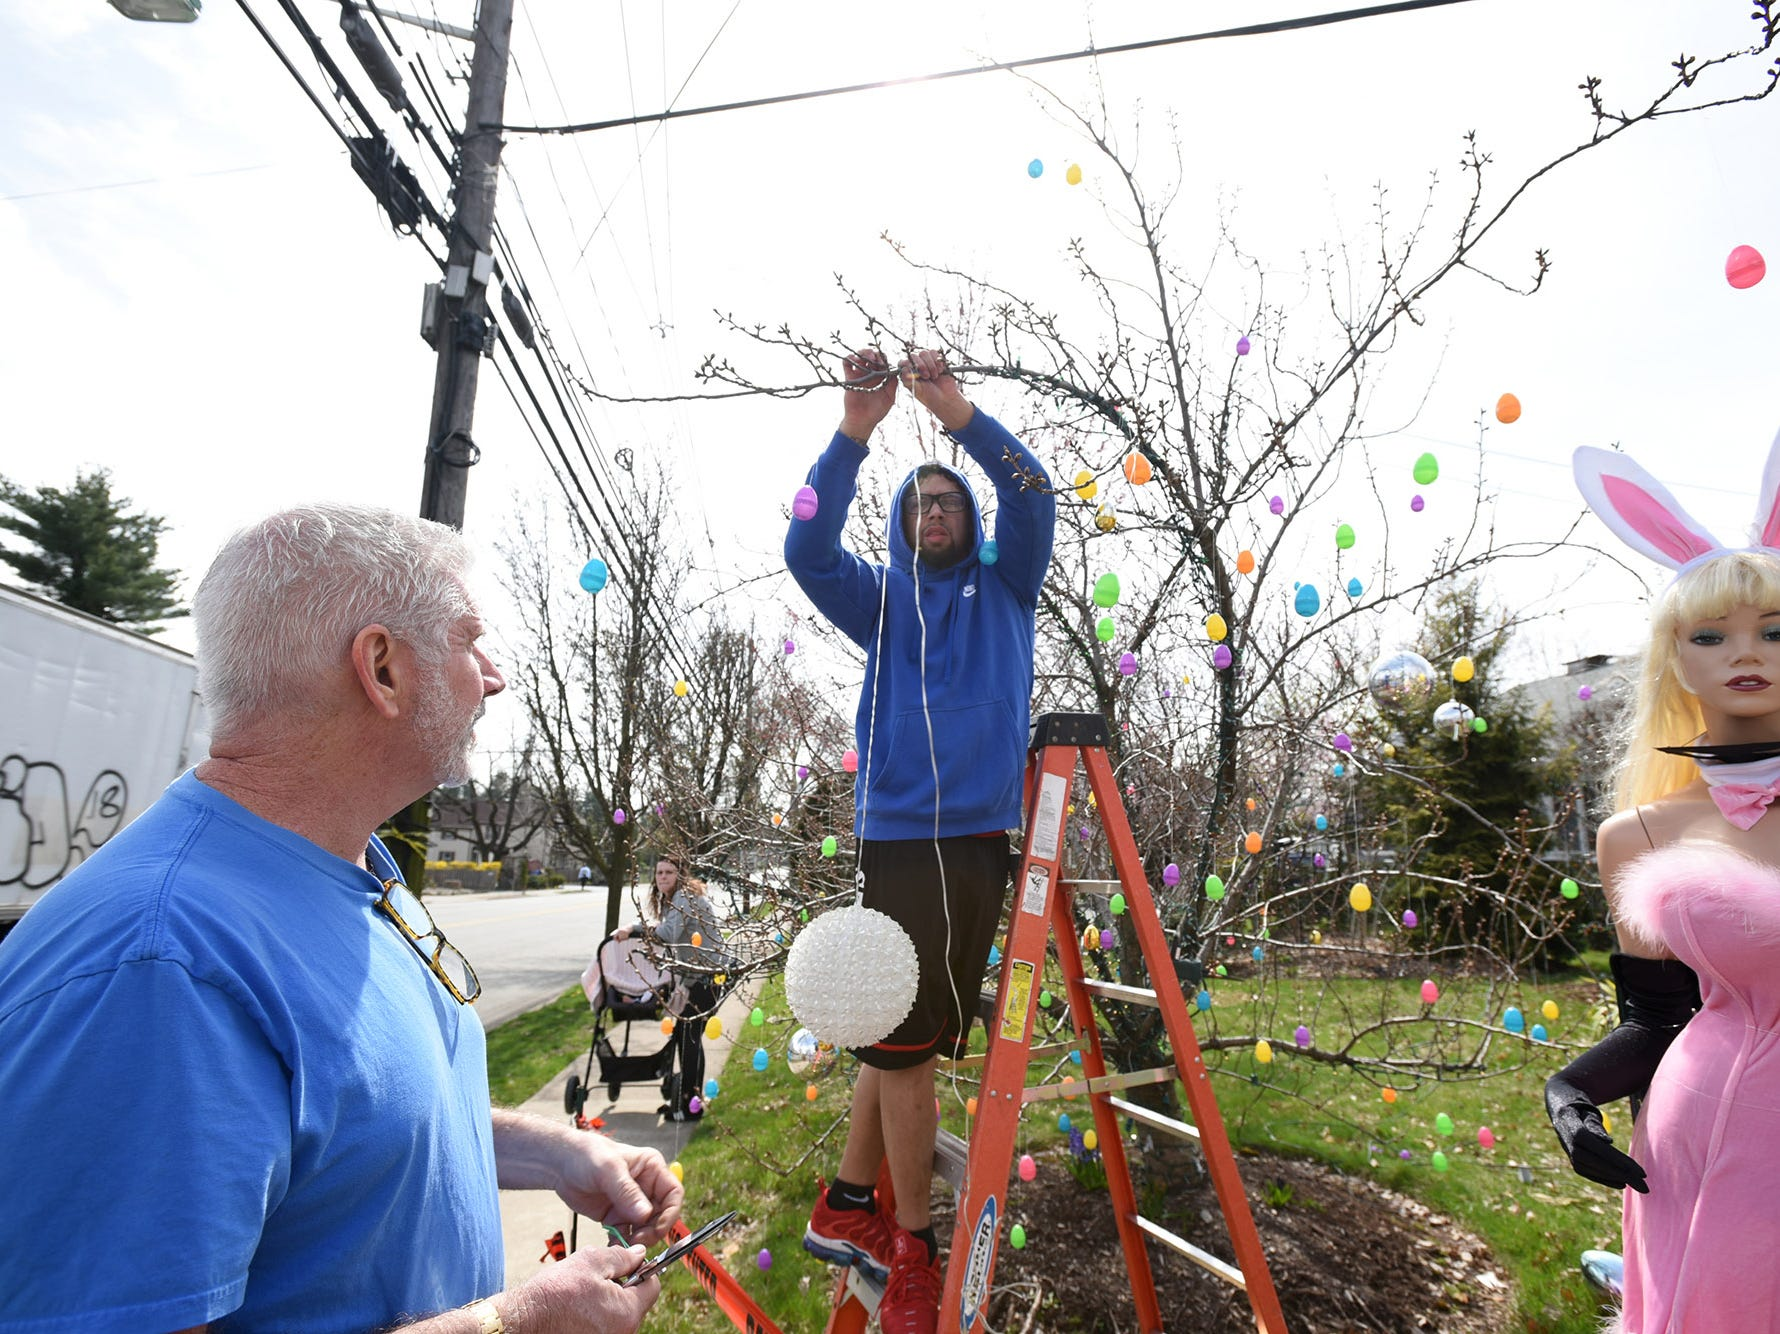 Wayne Gangi and neighbor Alex Cruz set up an Easter display on Grove Street in Clifton on Friday April 12, 2019. The original display was dismantled by a neighbor.